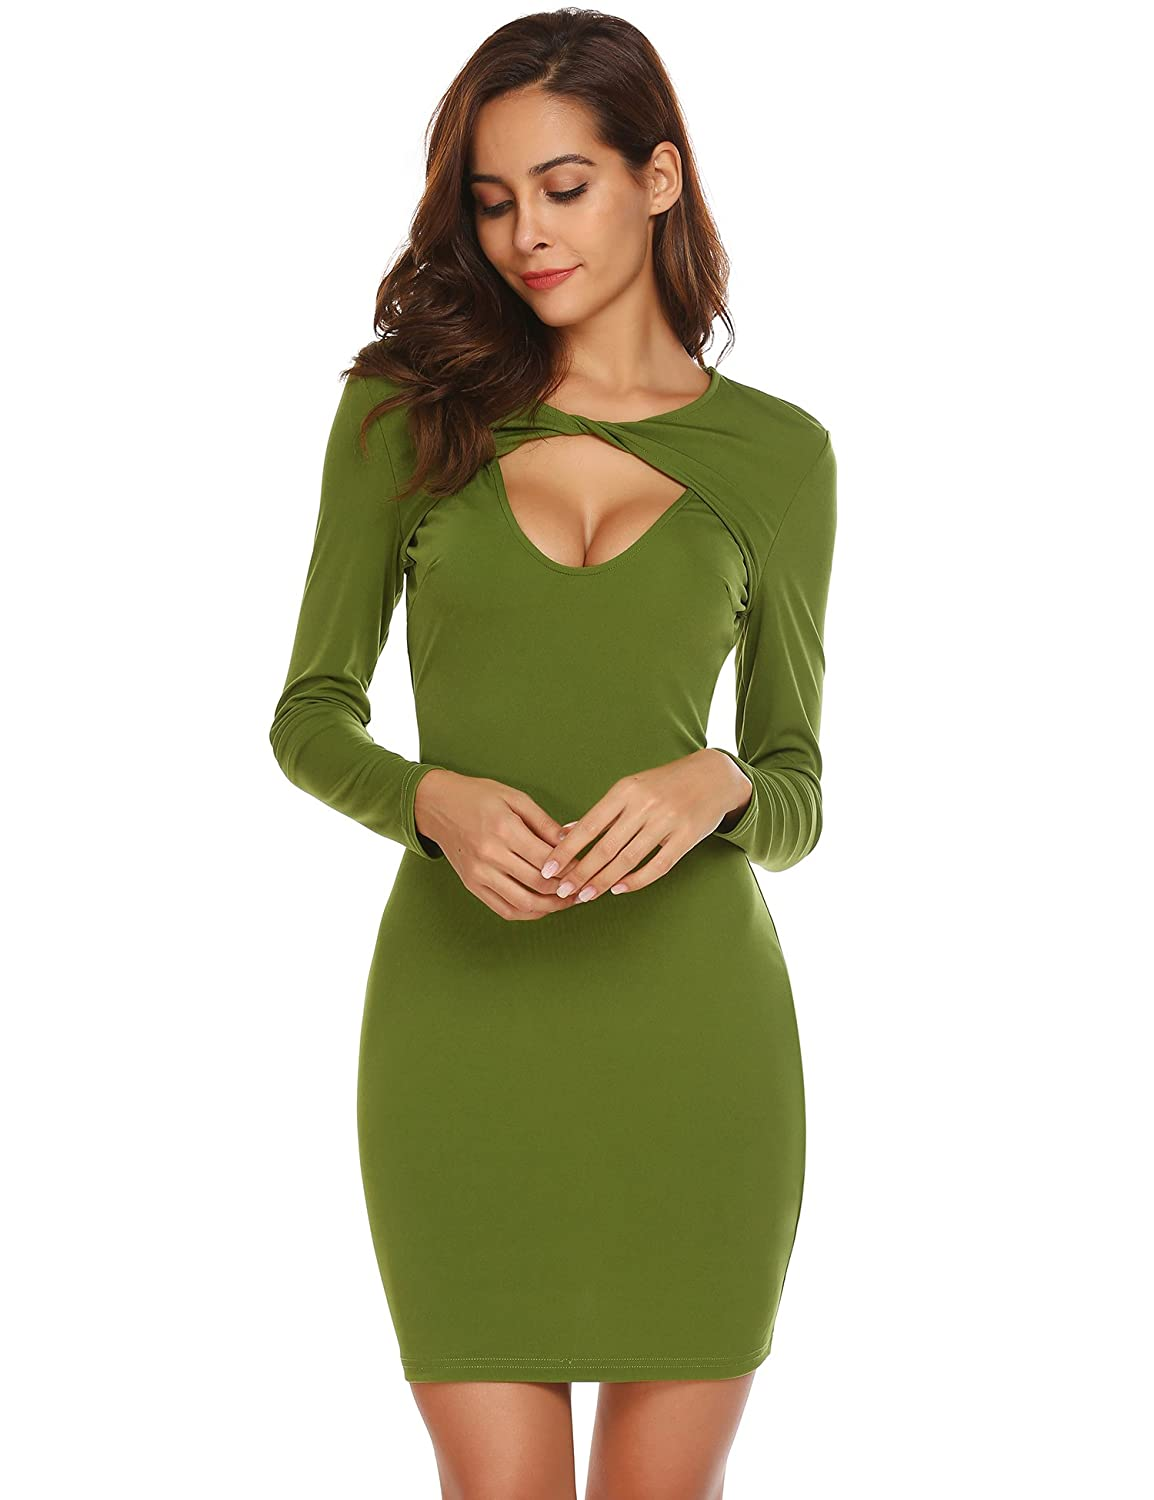 fab13db362b Zeagoo Women Sexy Deep V Neck Sleeveless Bodycon Cocktail Evening Party  Summer Dress at Amazon Women's Clothing store: